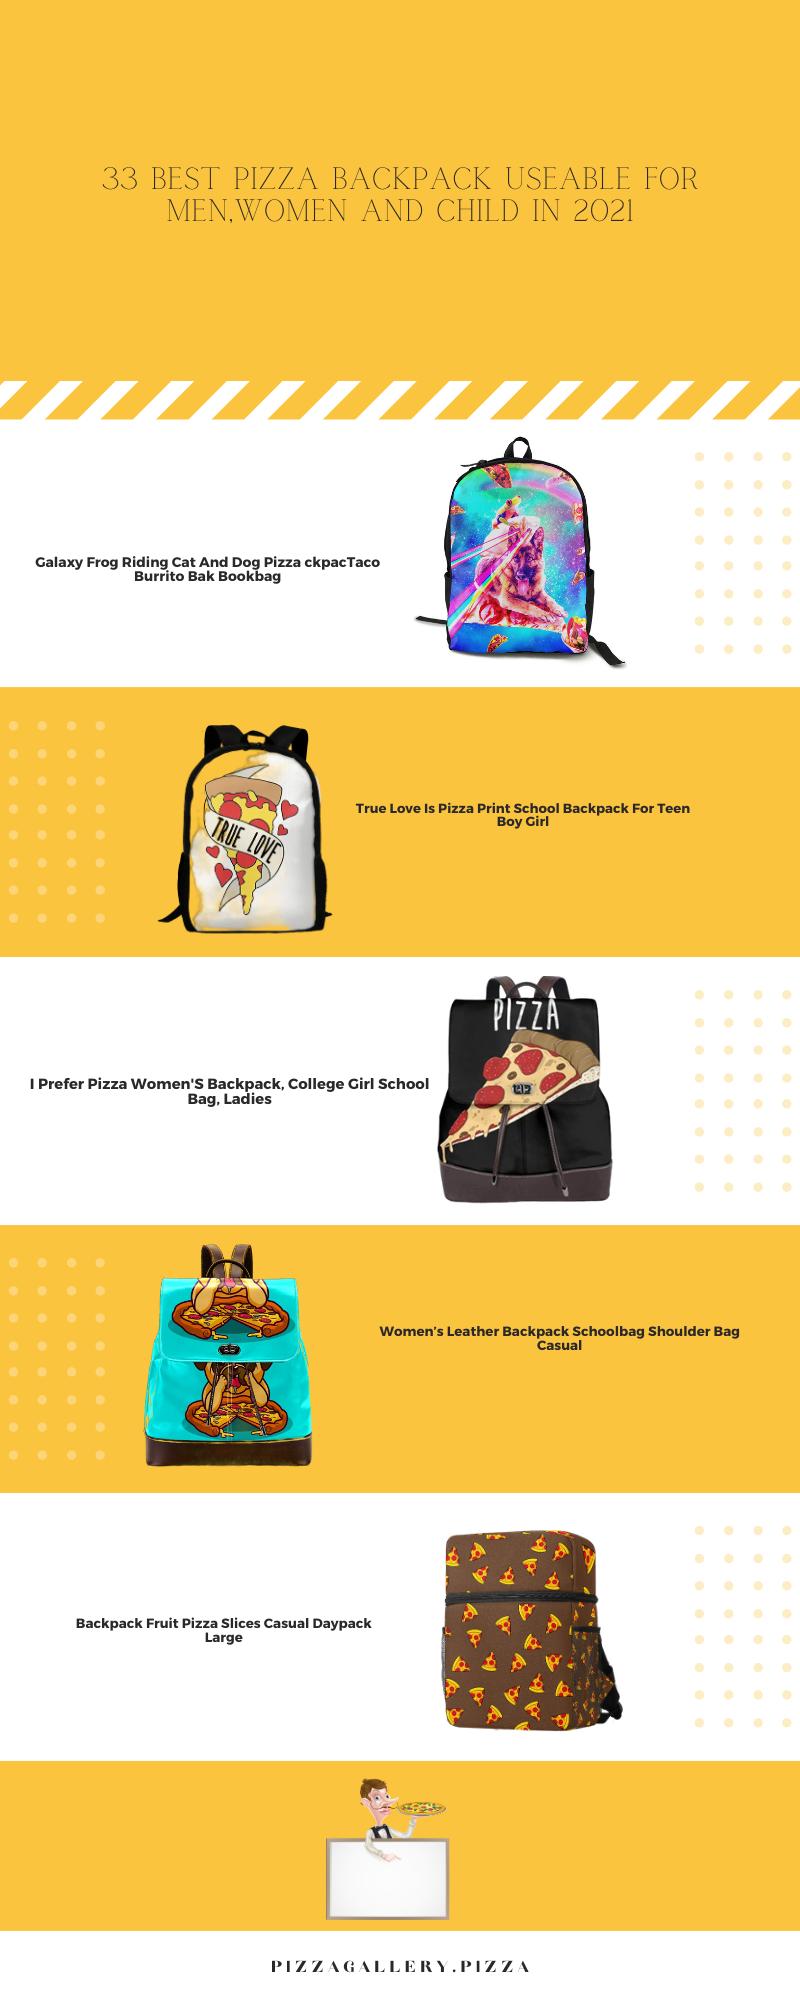 33 Best Pizza Backpack Useable For Men,Women And Child In 2021